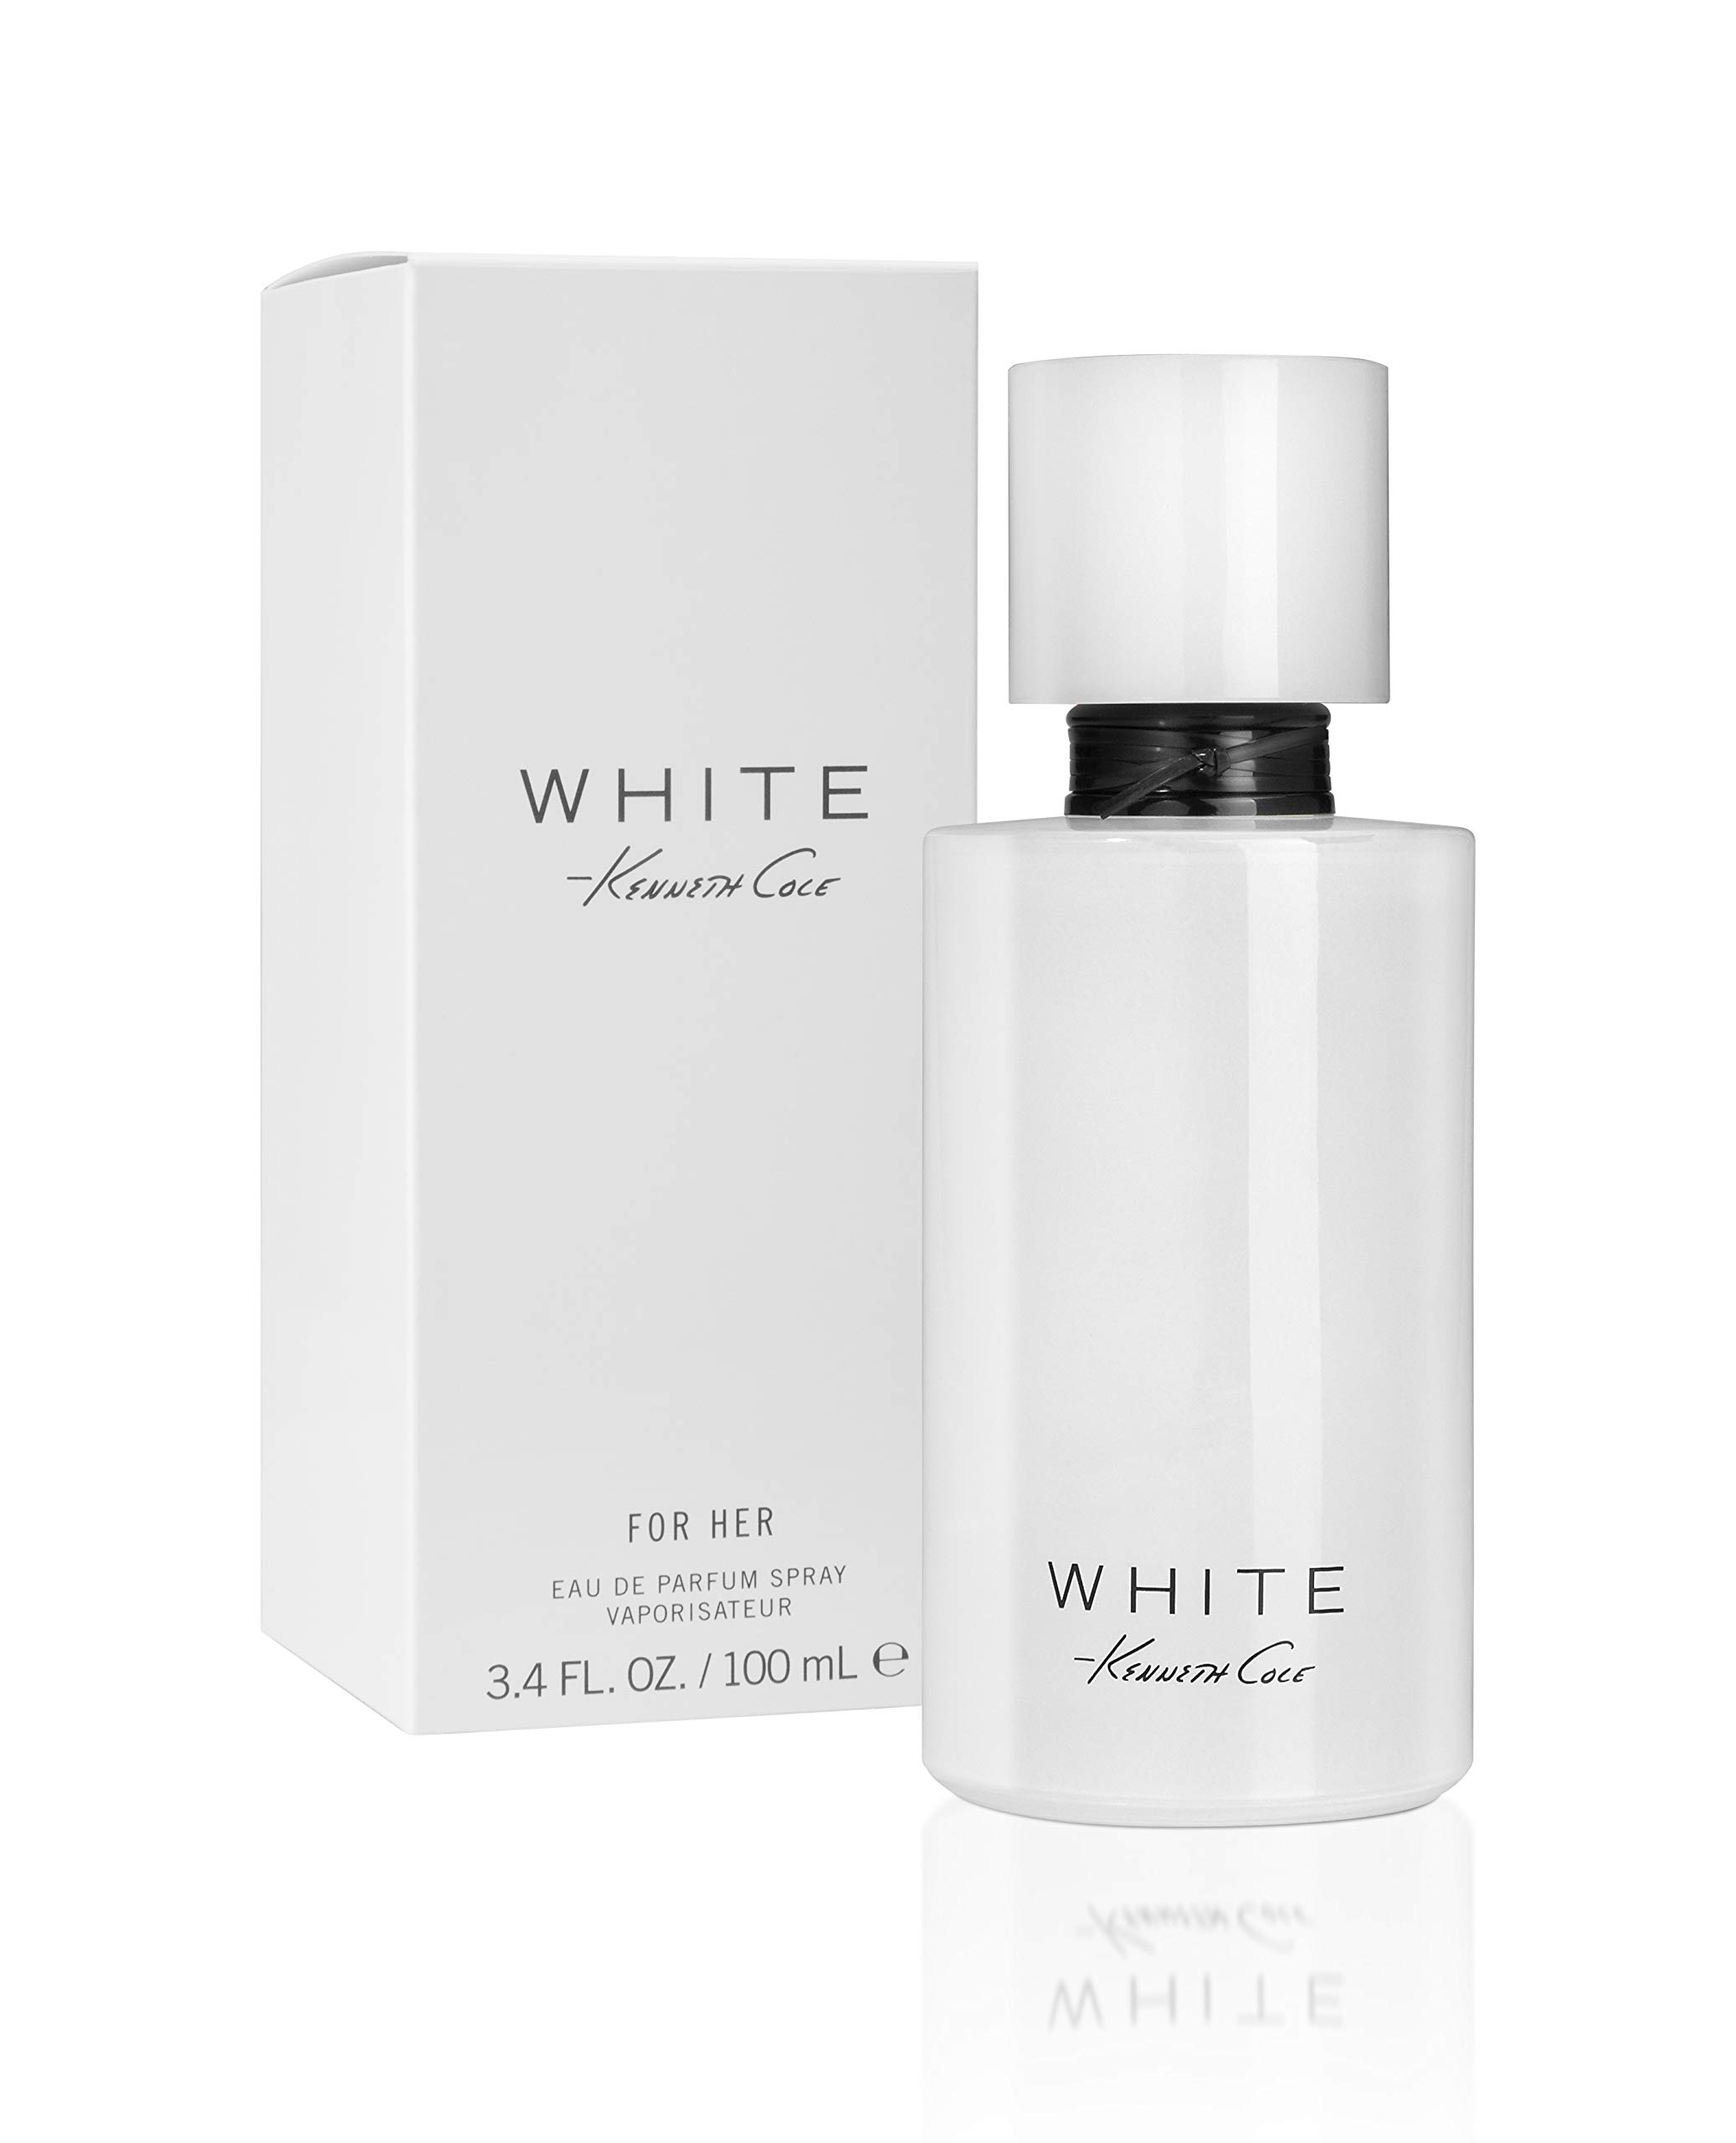 Kenneth Cole White for Her, 3.4 Fl oz